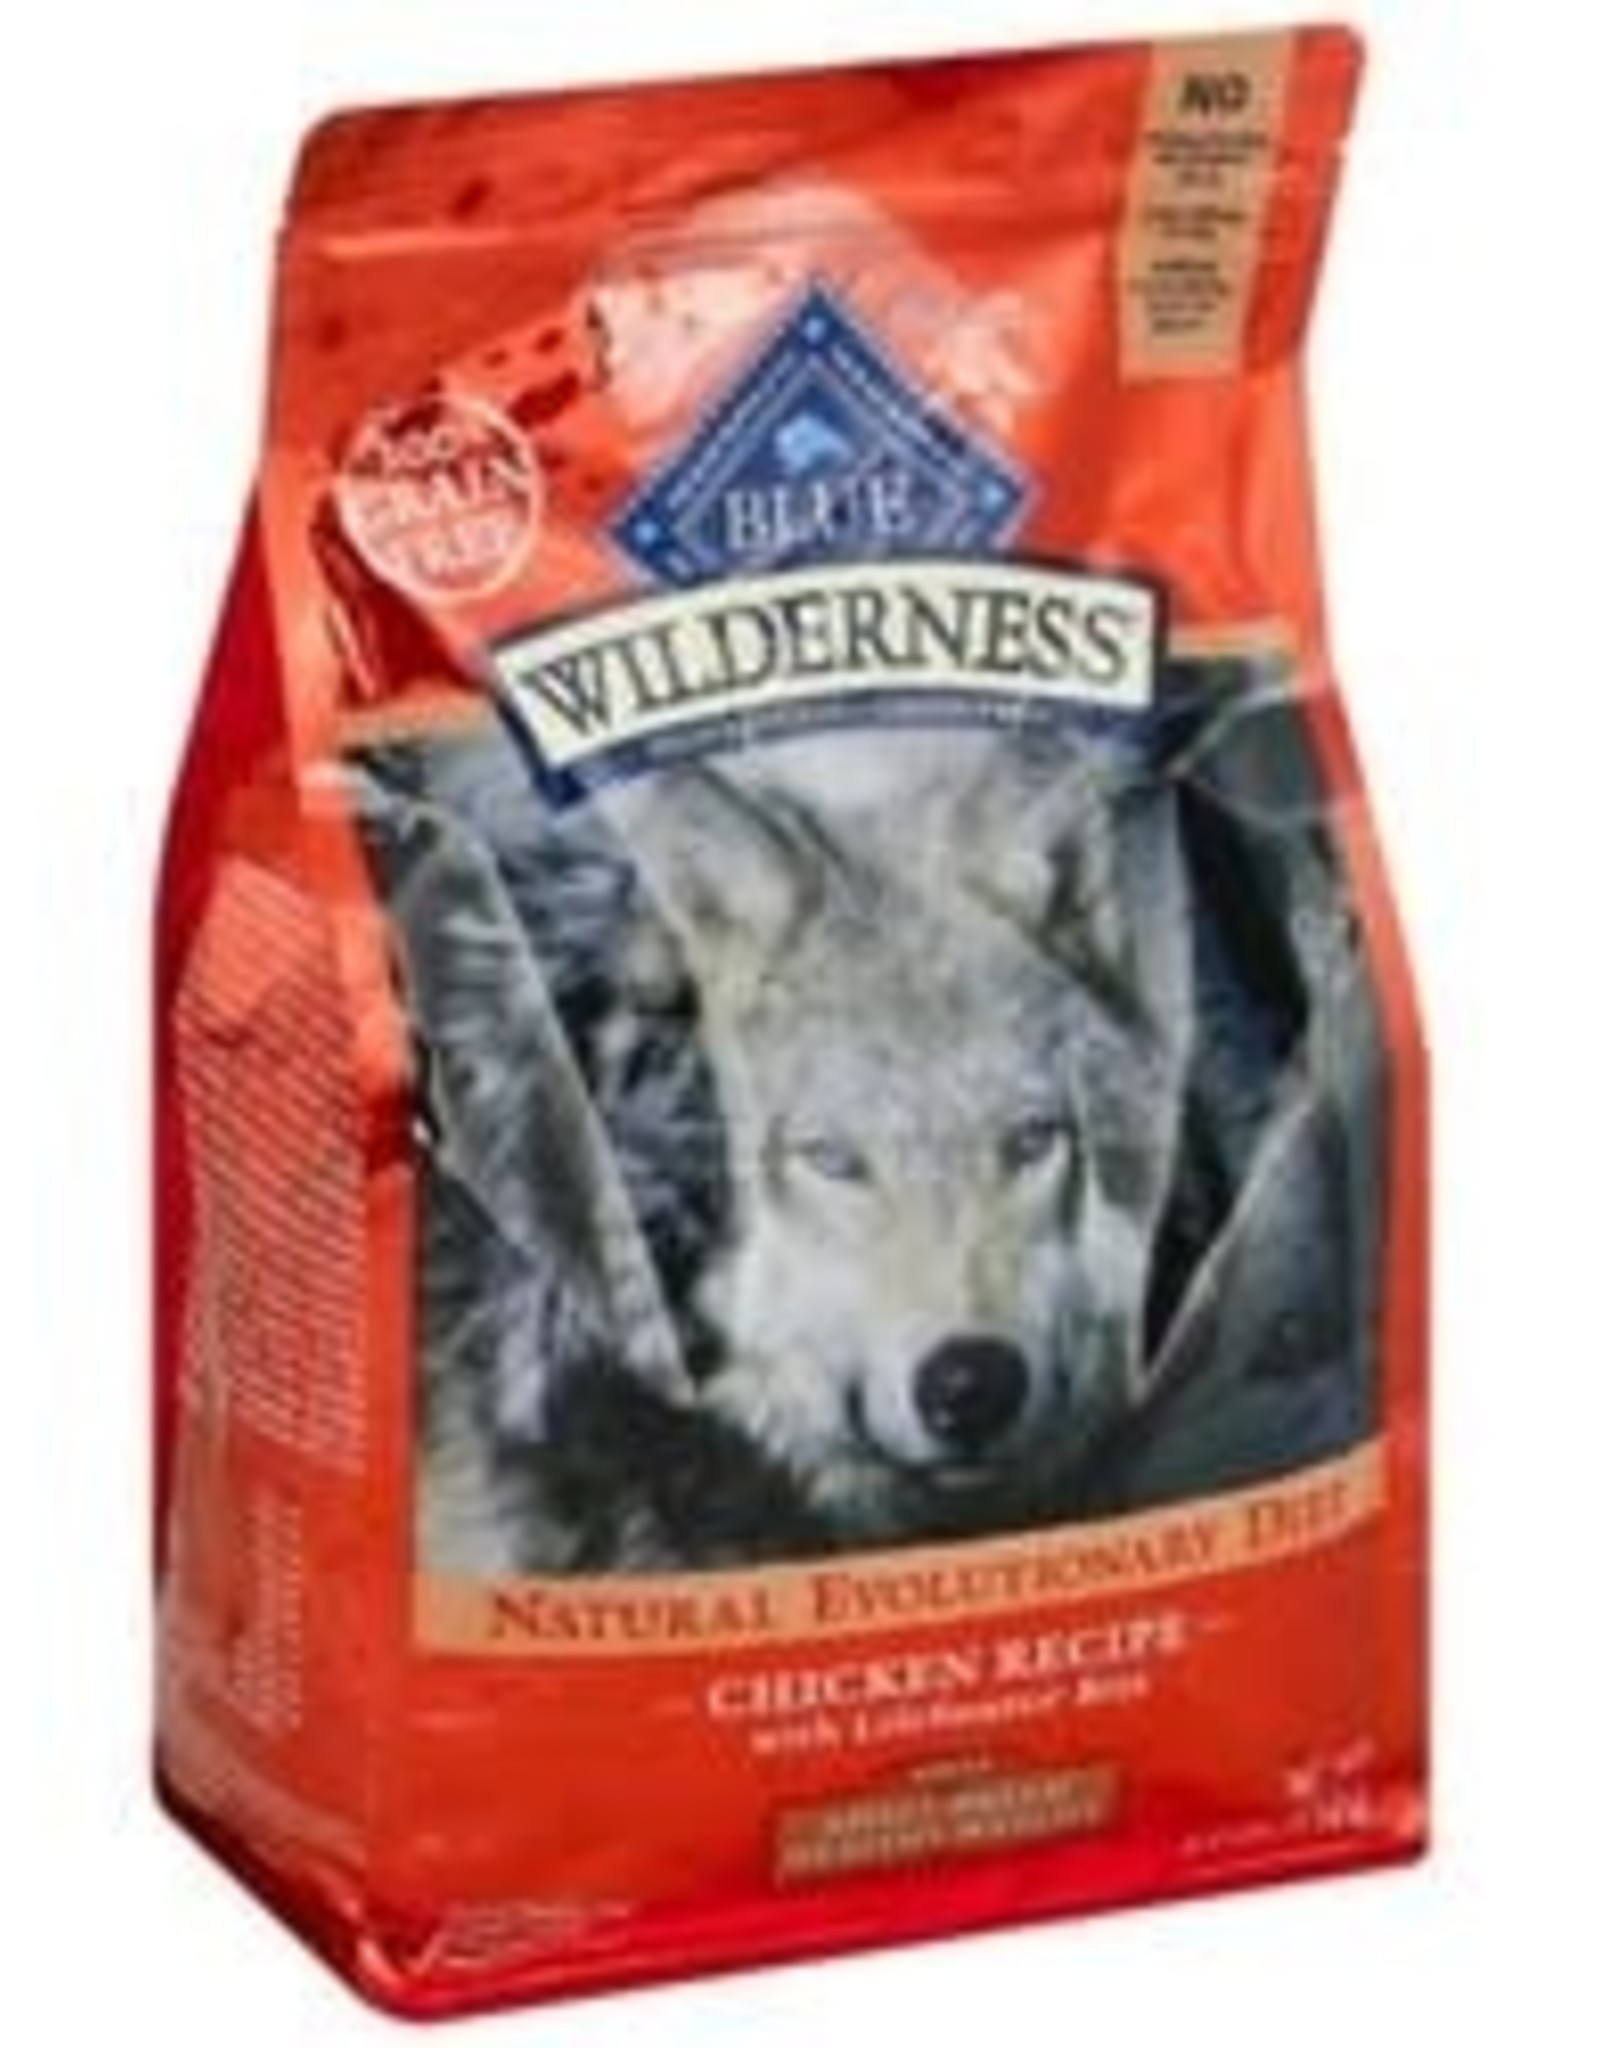 Blue Buffalo Blue Buffalo  Wilderness Food for Dogs, Natural, Adult, Small Breed Healthy Weight, Chicken Recipe - 4.5 lb